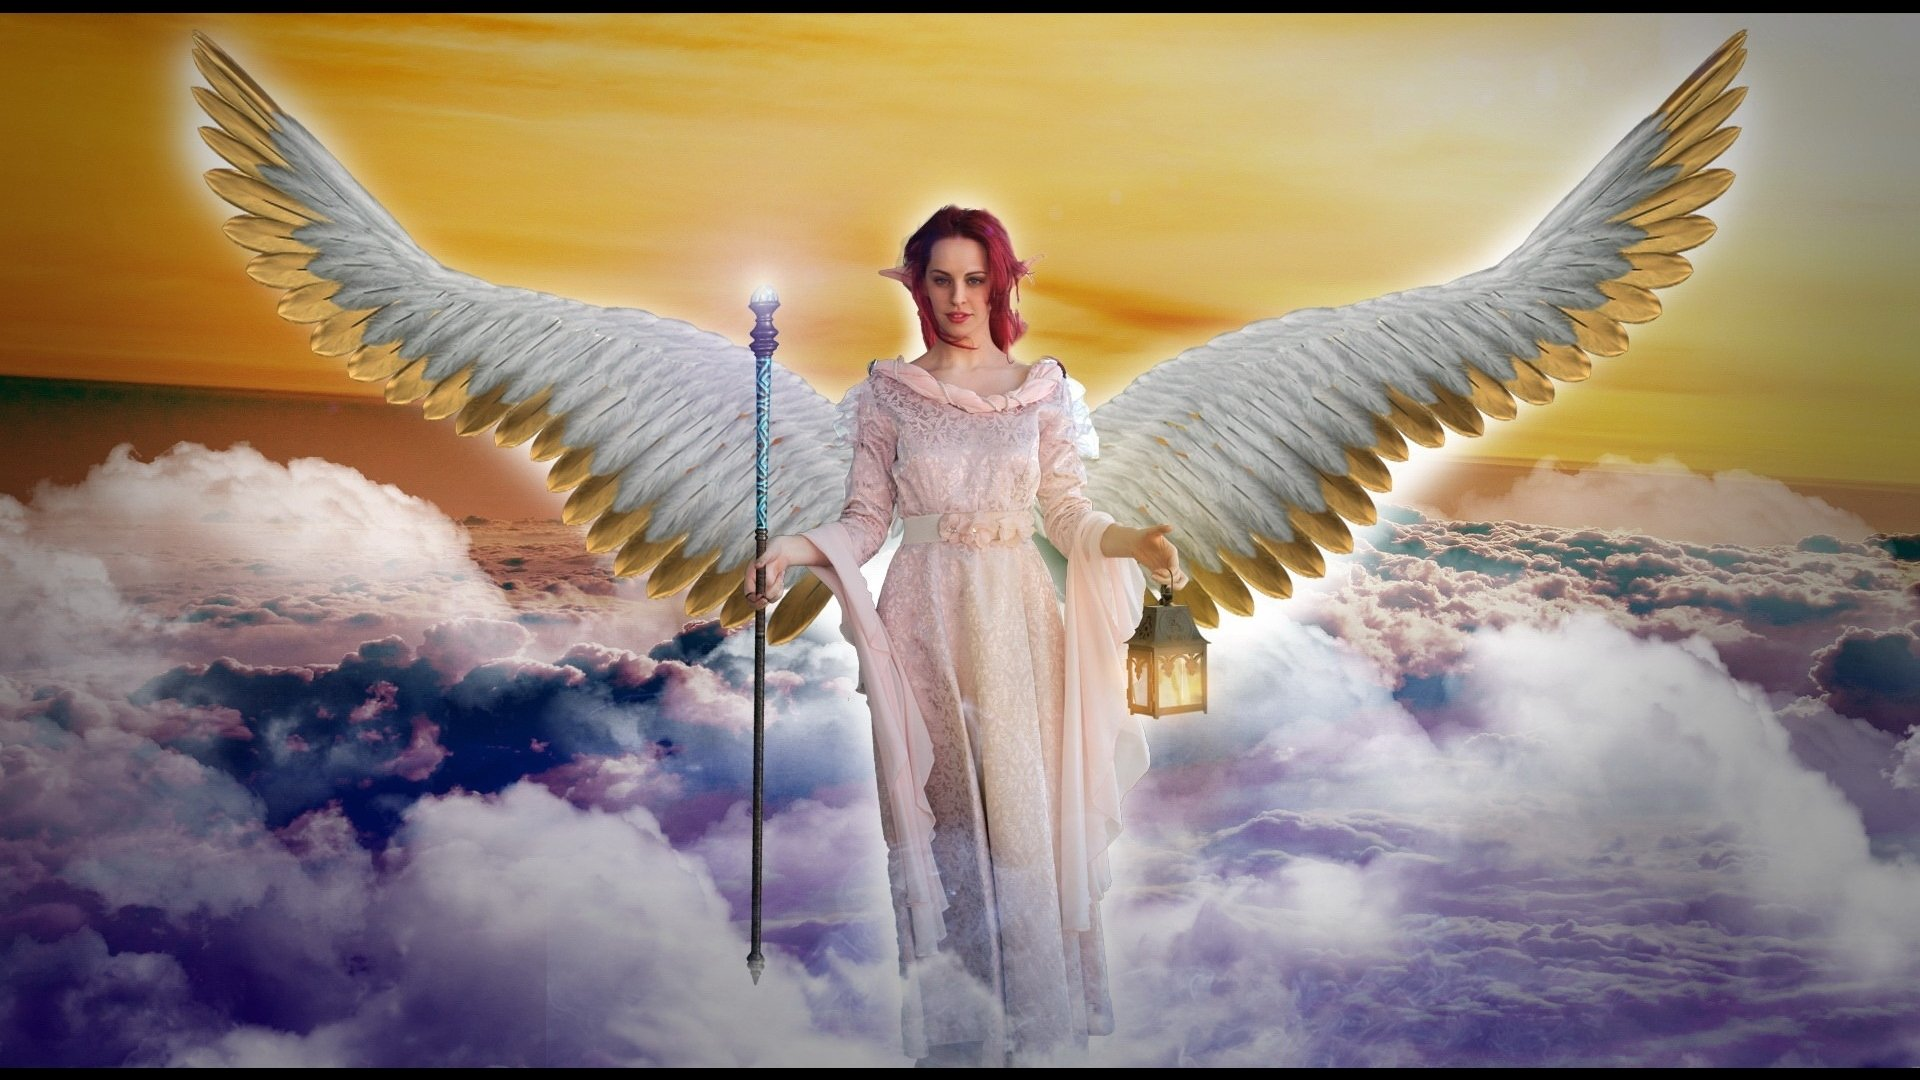 heavenly angels hd wallpapers - photo #29